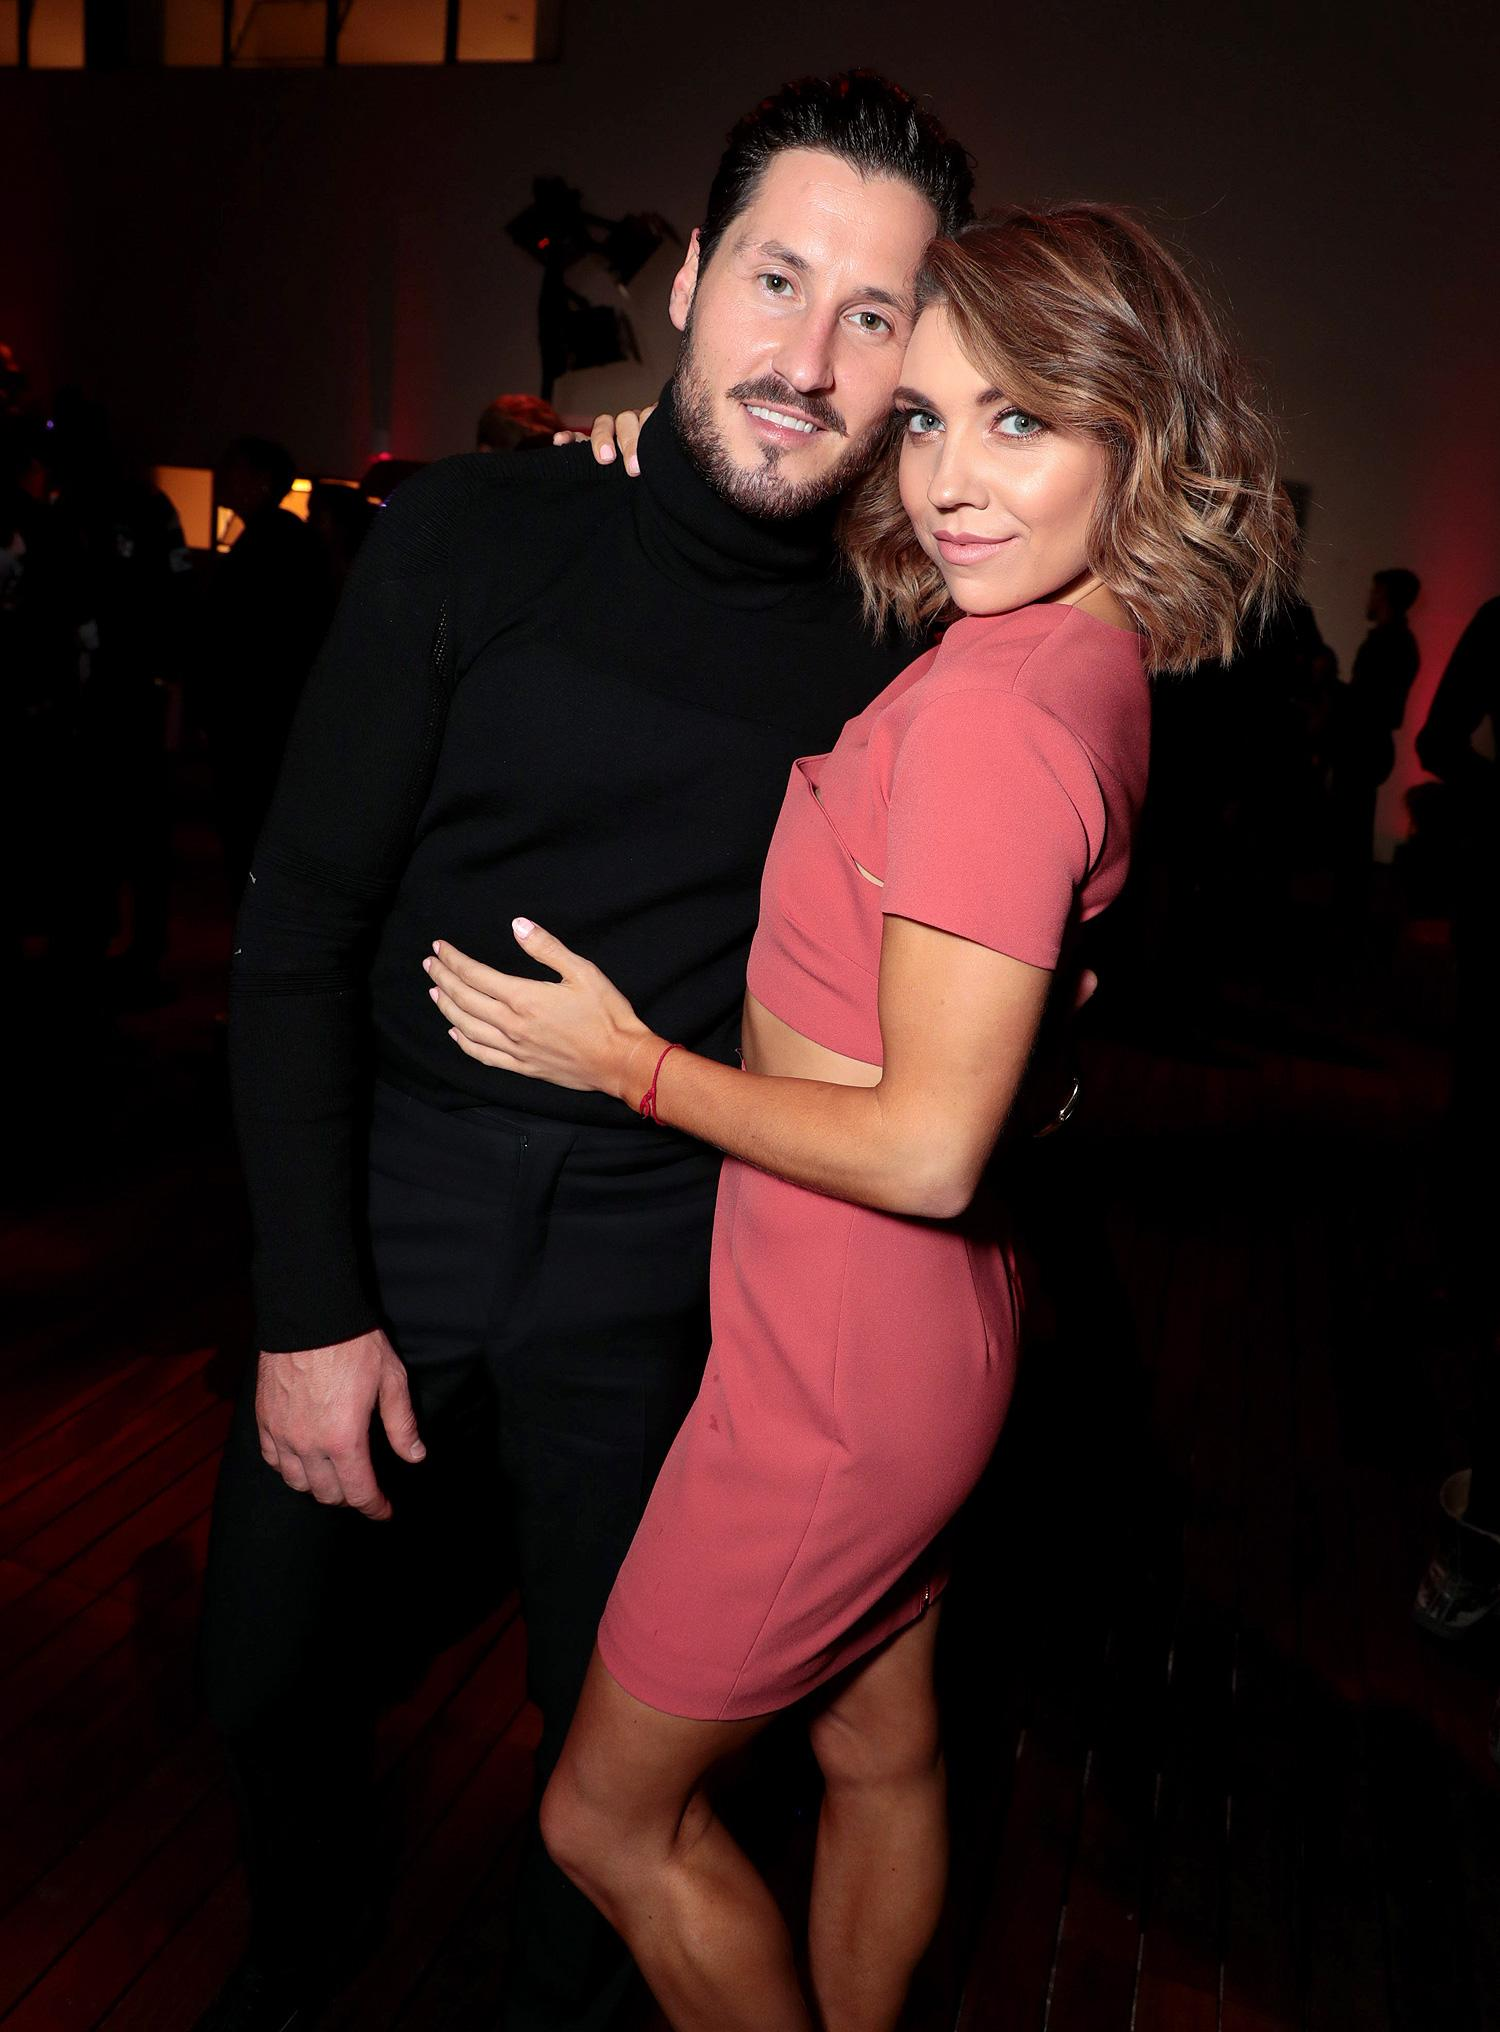 Who is val from dwts dating now